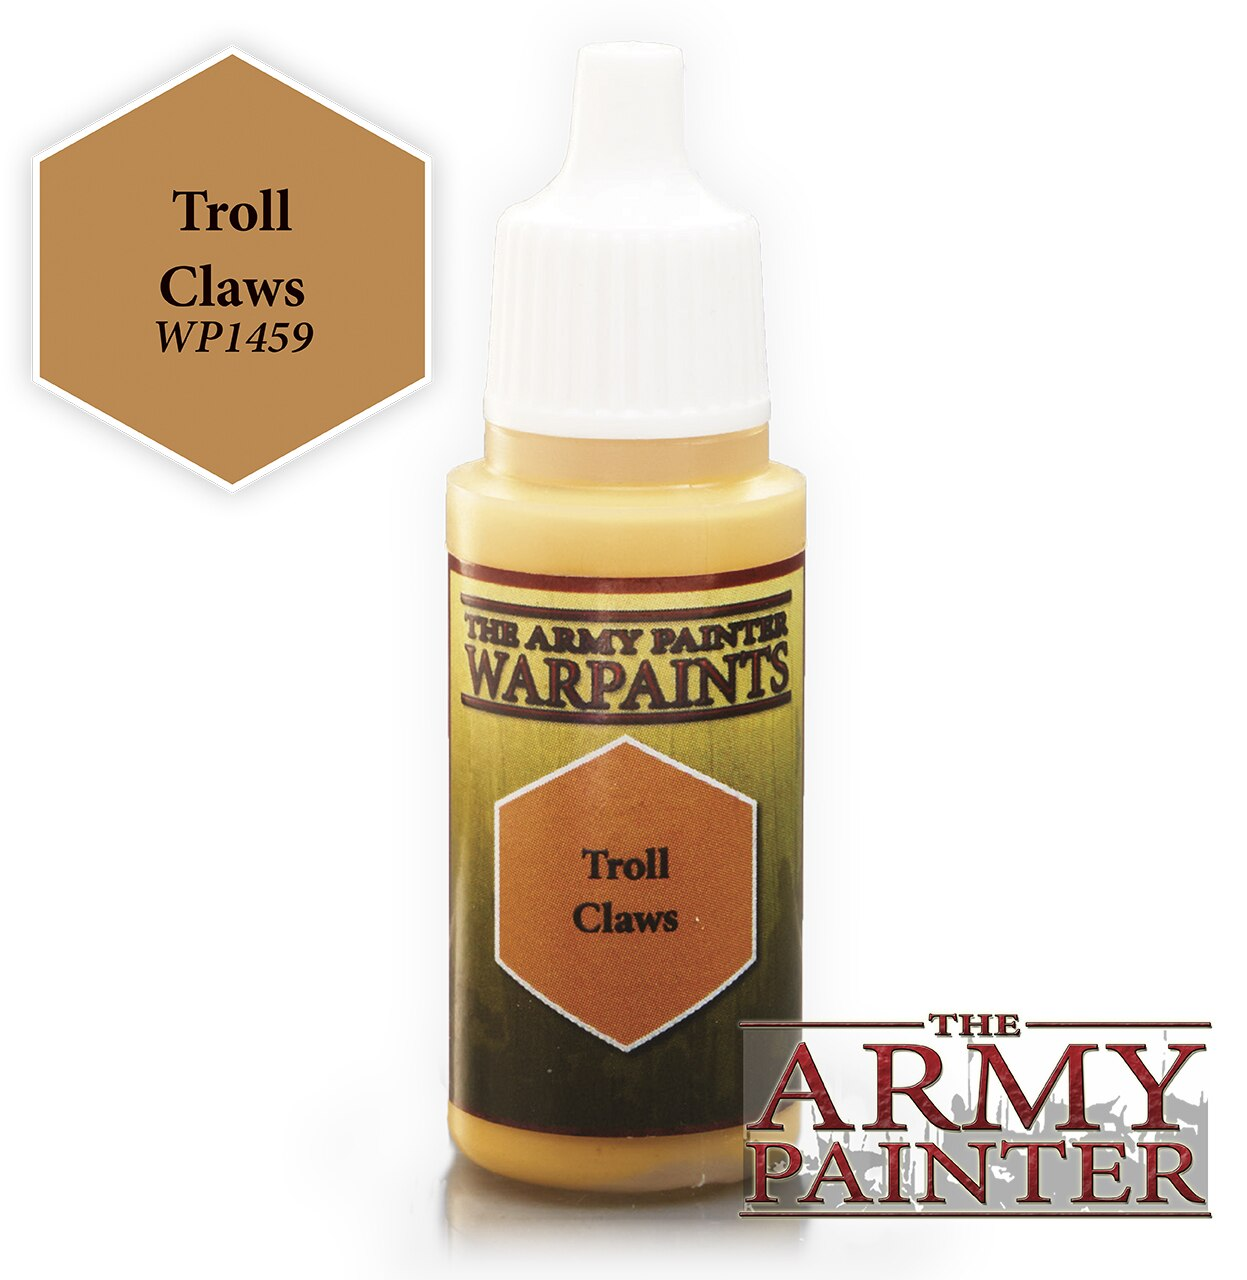 Army Painter Warpaint - Troll Claws